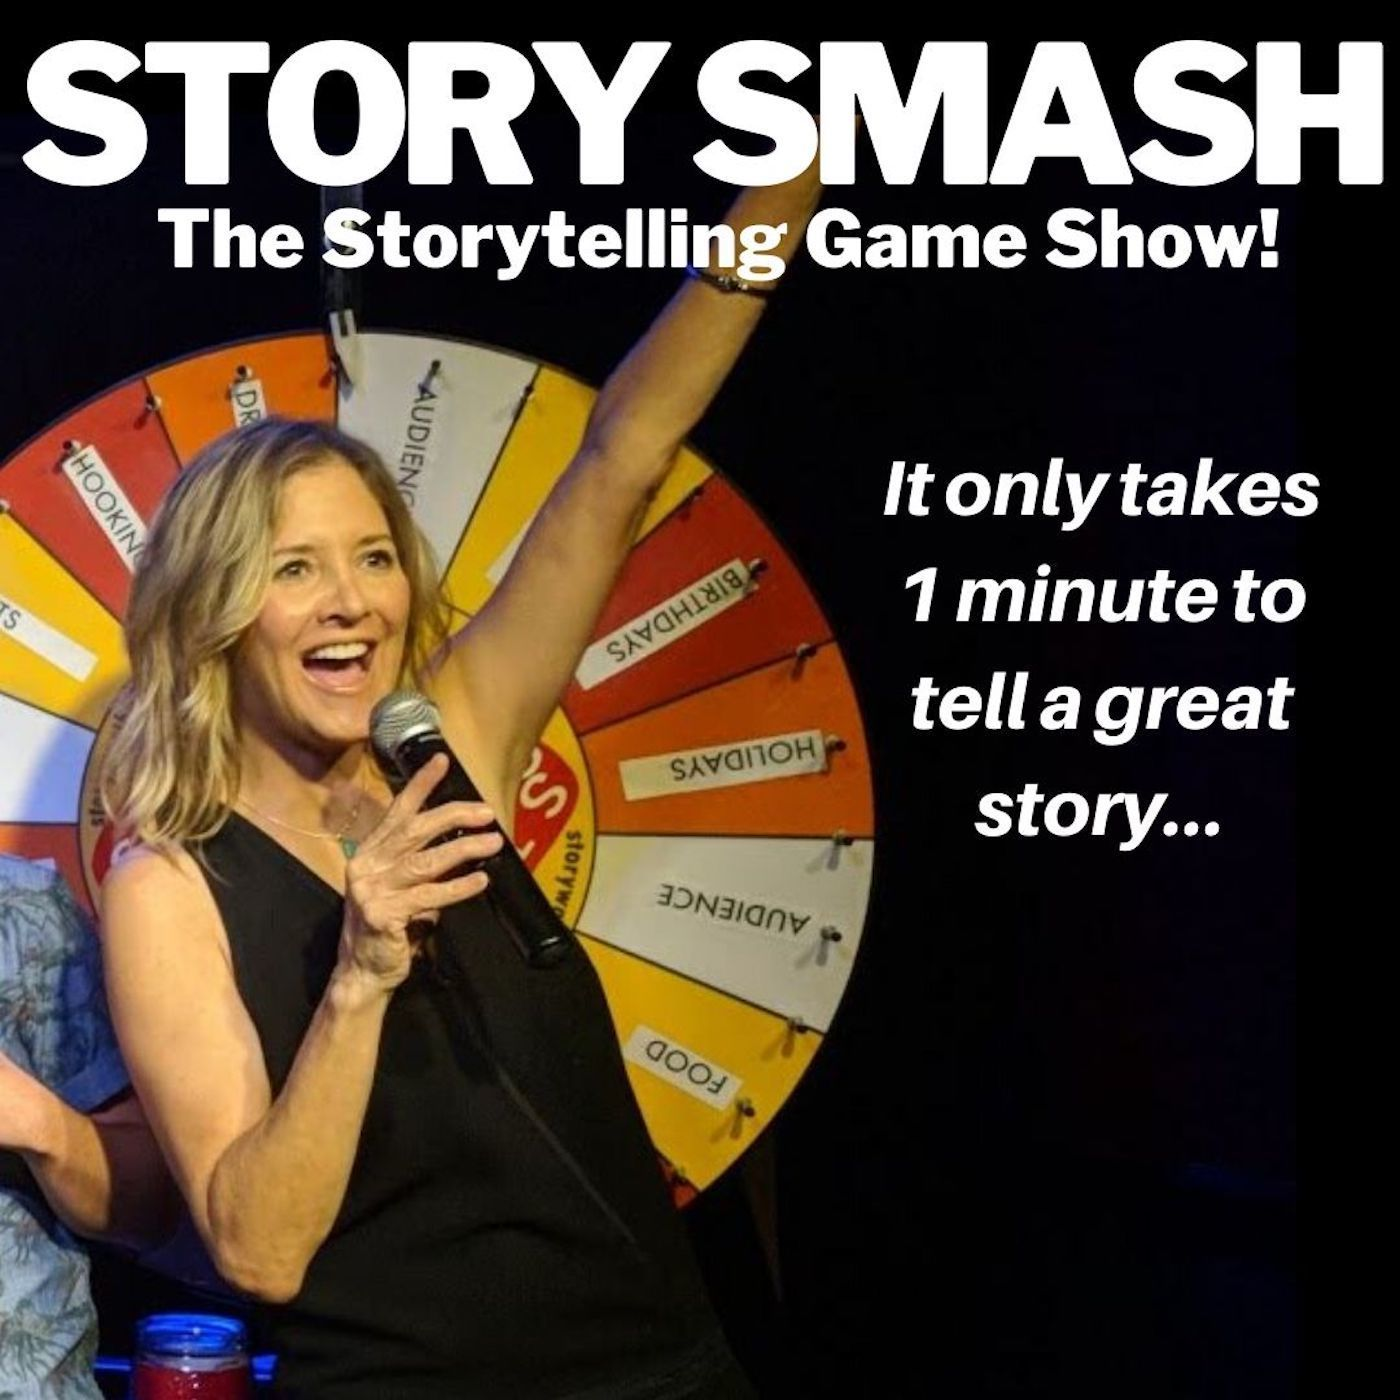 600 - Story Smash the Storytelling Game Show LIVE at The Hollywood Improv!